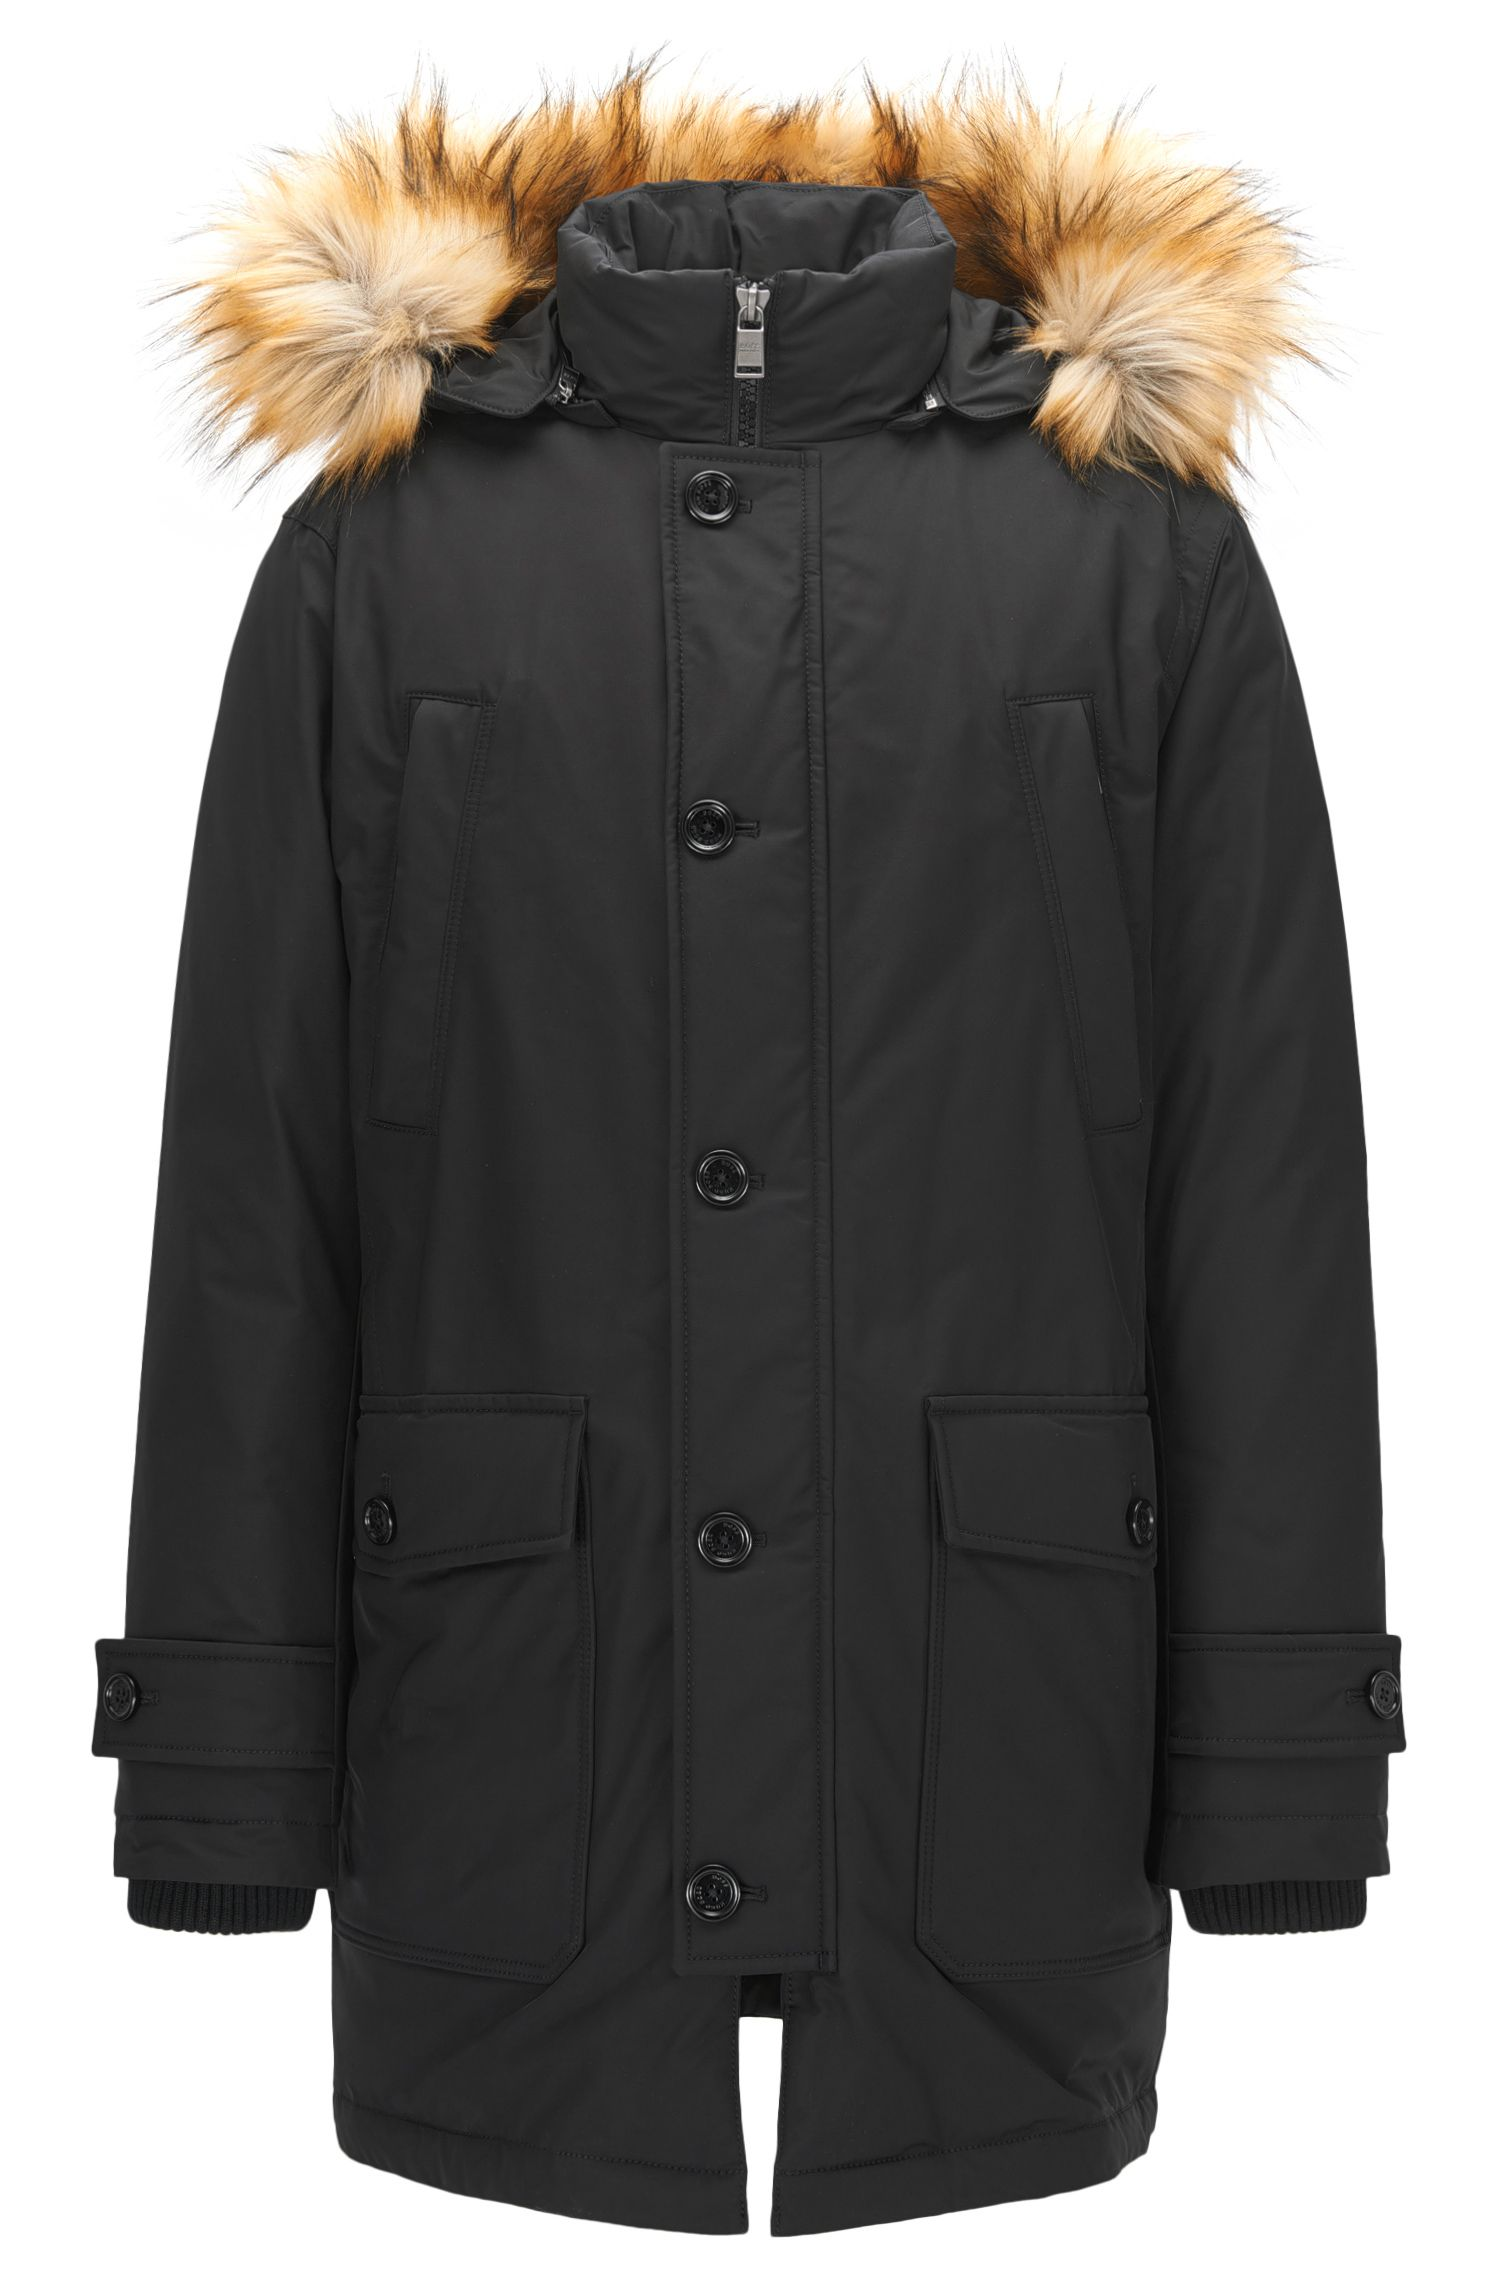 Relaxed-fit parka in water-repellent technical fabric